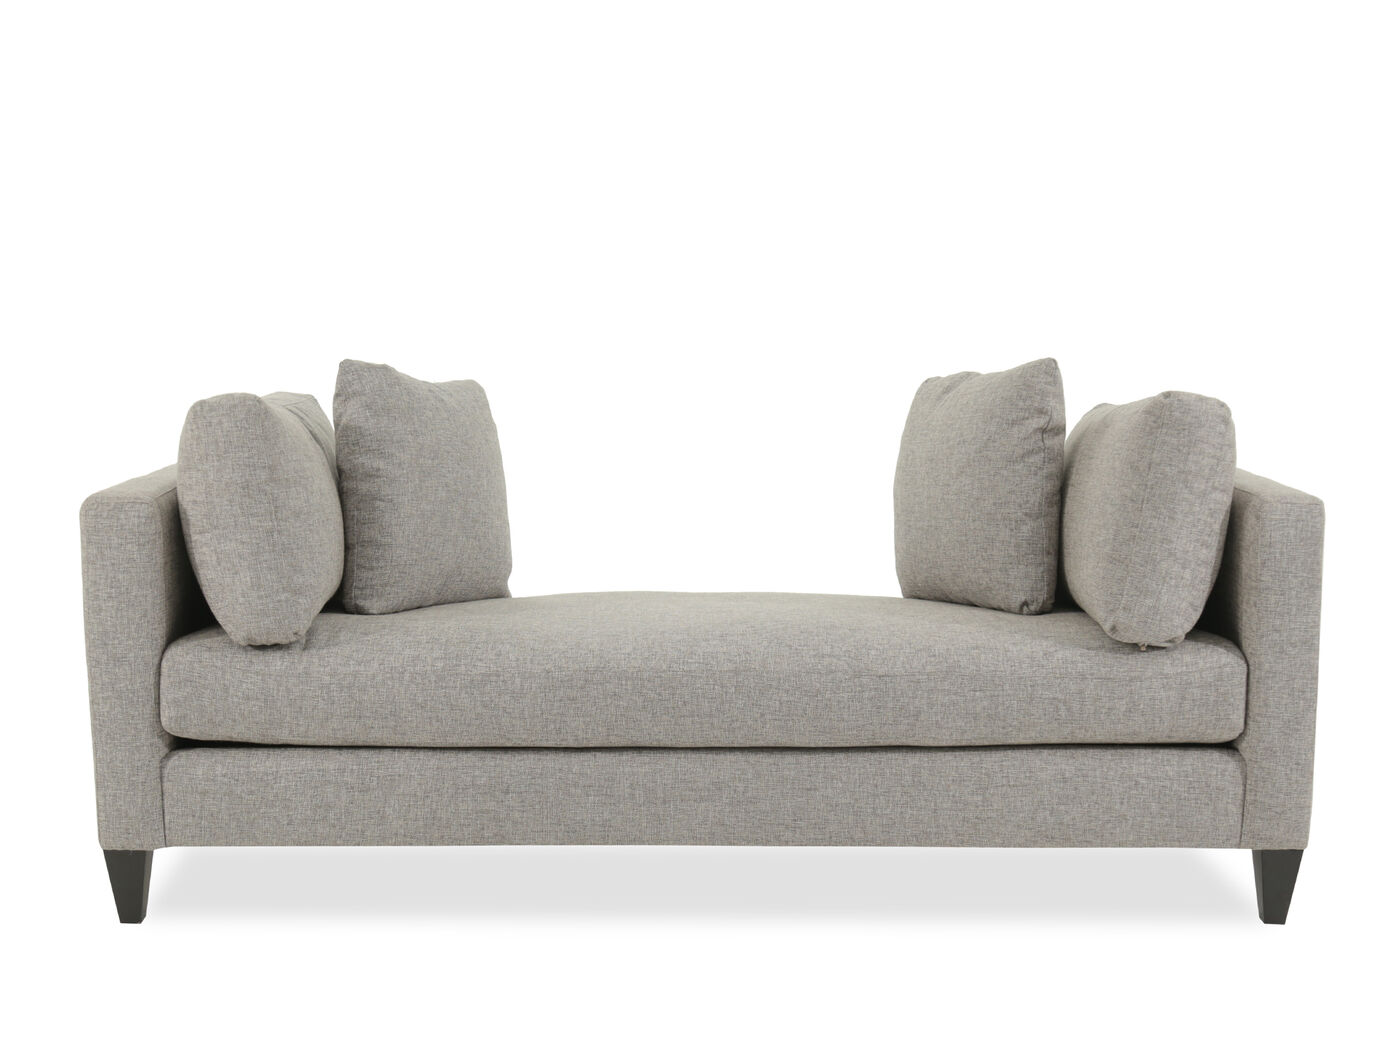 Contemporary Chaise In Warm Gray Mathis Brothers Furniture ~ Contemporary Chaise Sofa